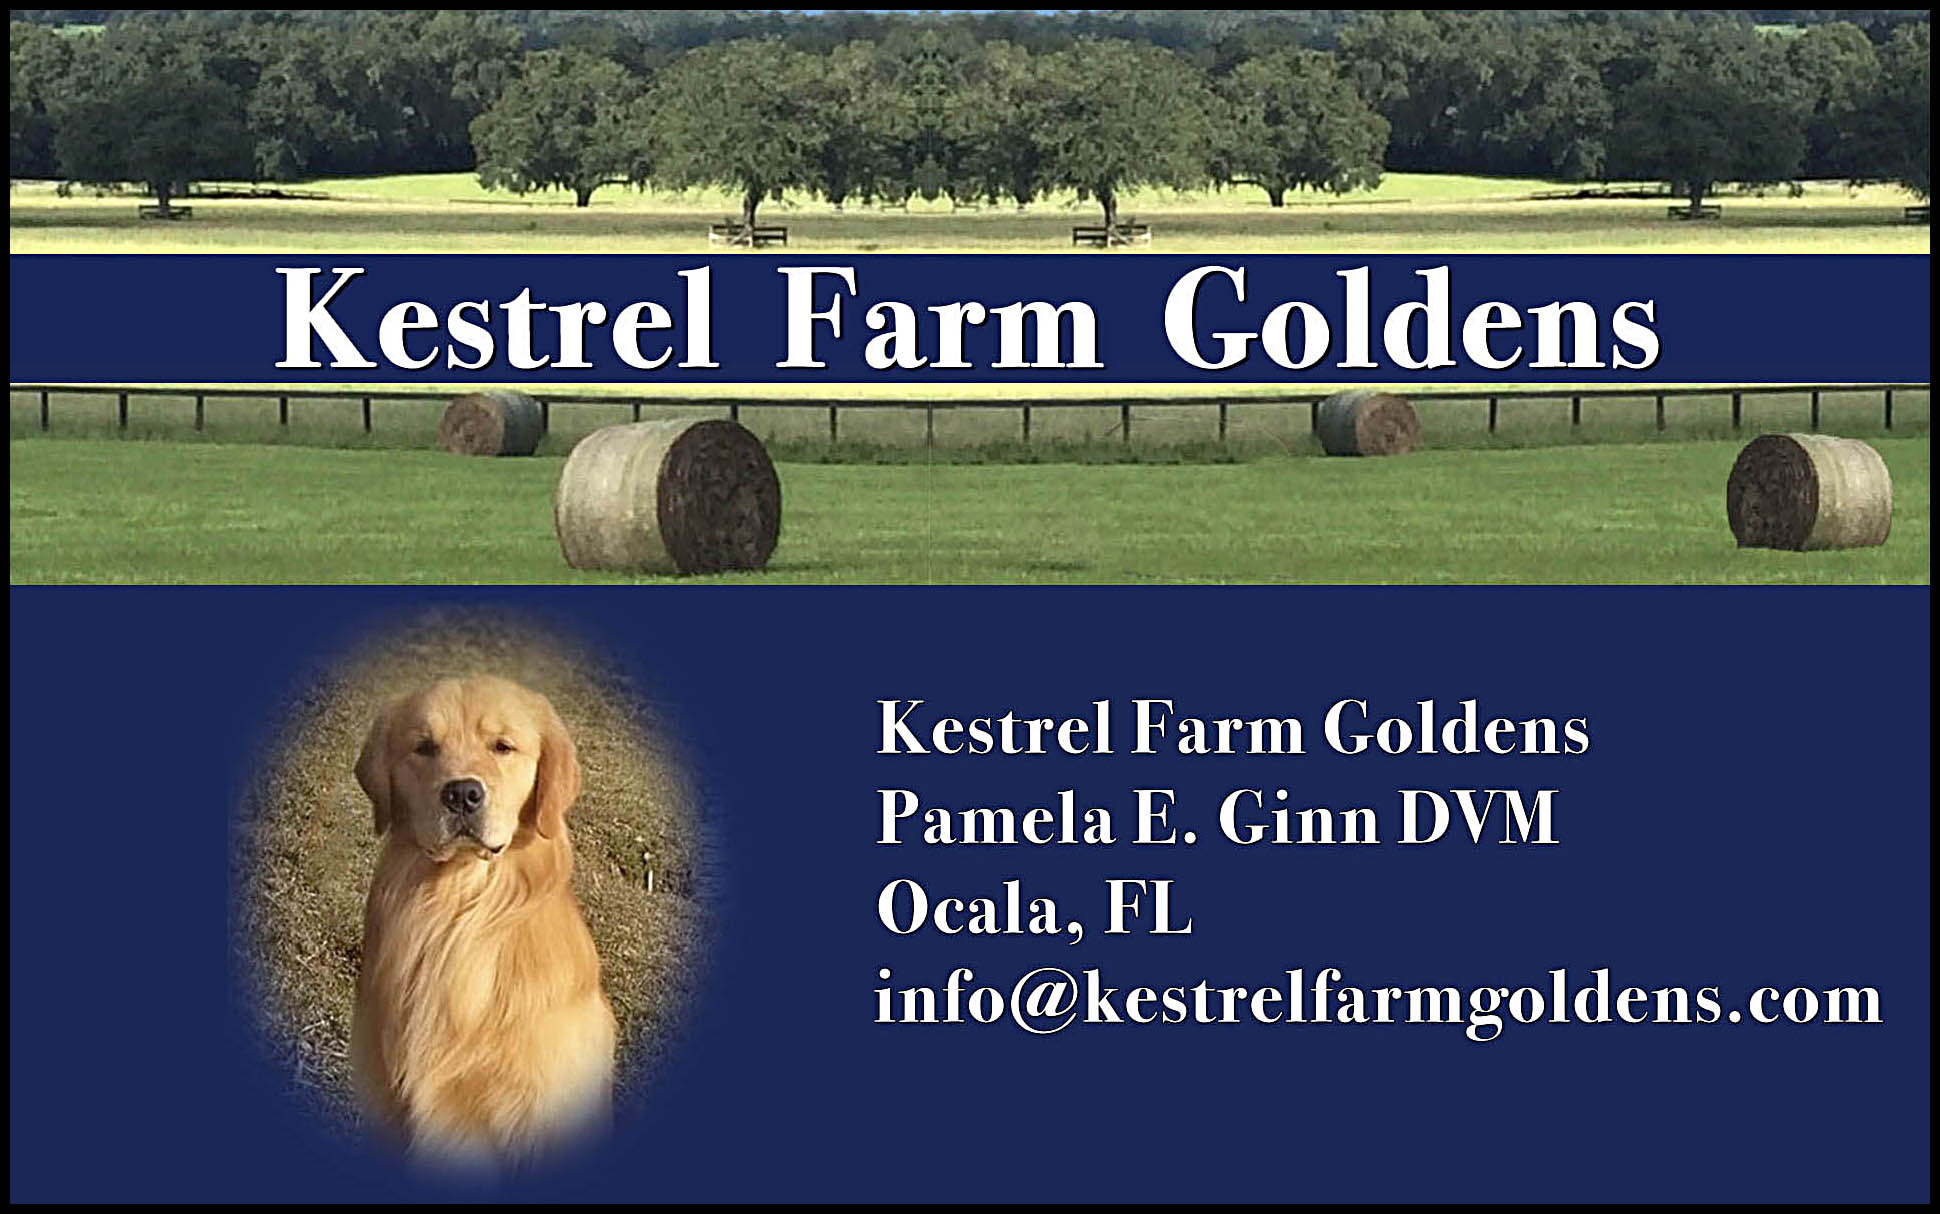 Kestrel Farm Goldens